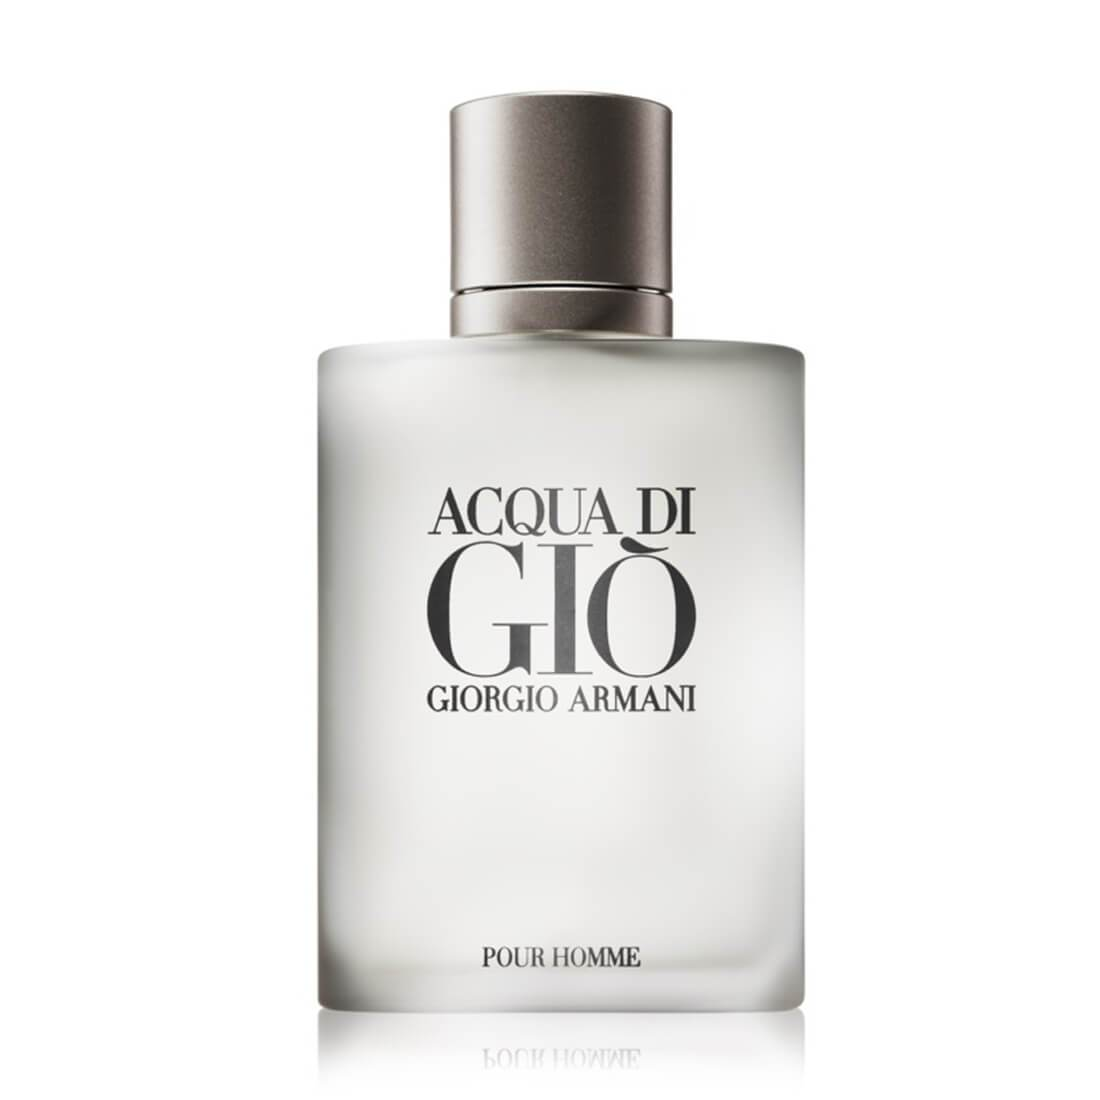 Giorgio Armani Acqua Di Gio EDT Perfume For Men